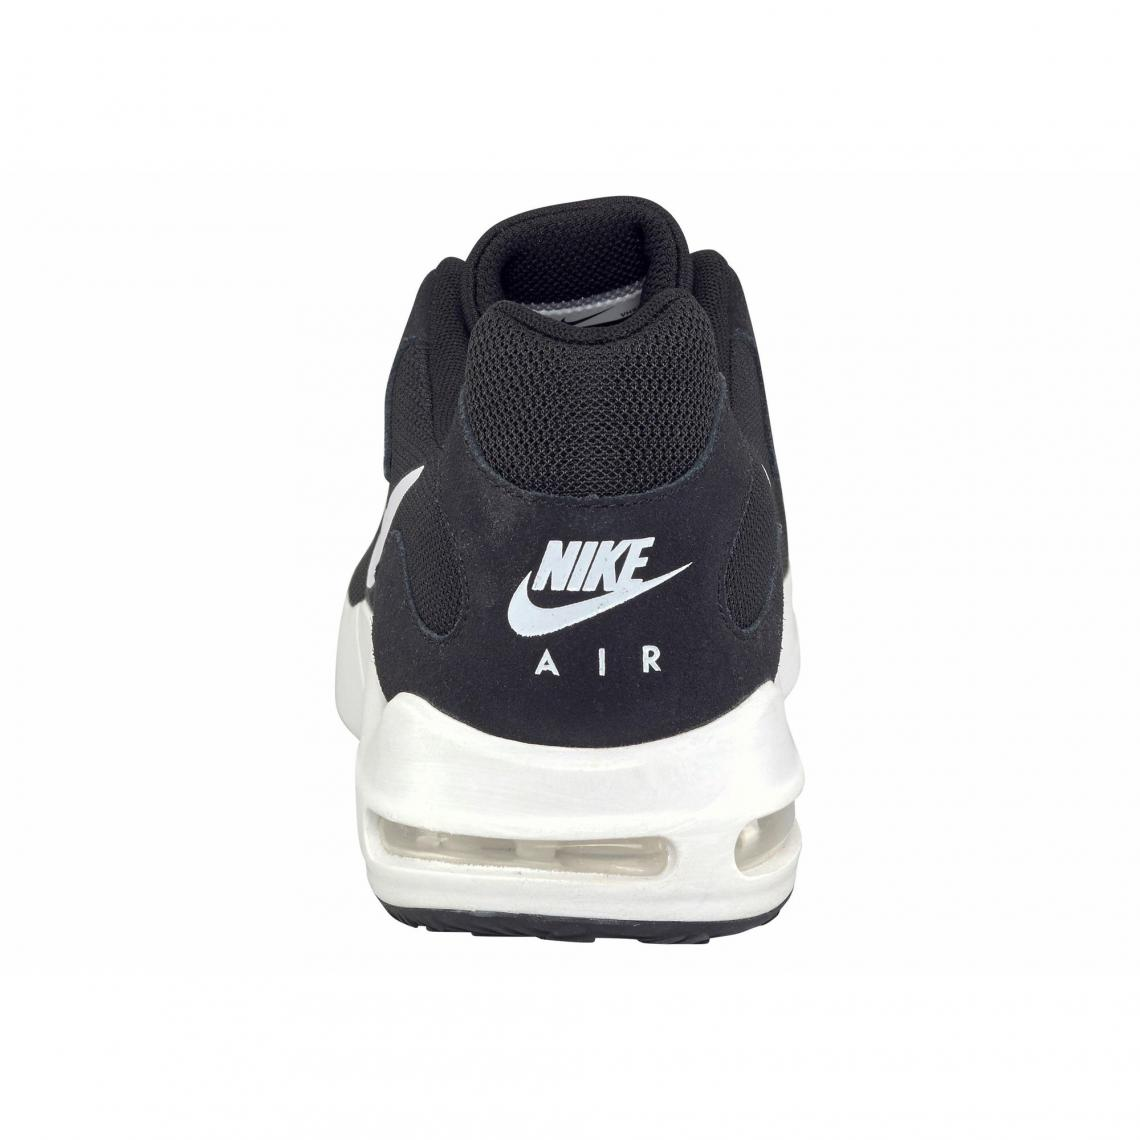 low priced 8fca4 7d7c0 Toutes les chaussures Nike